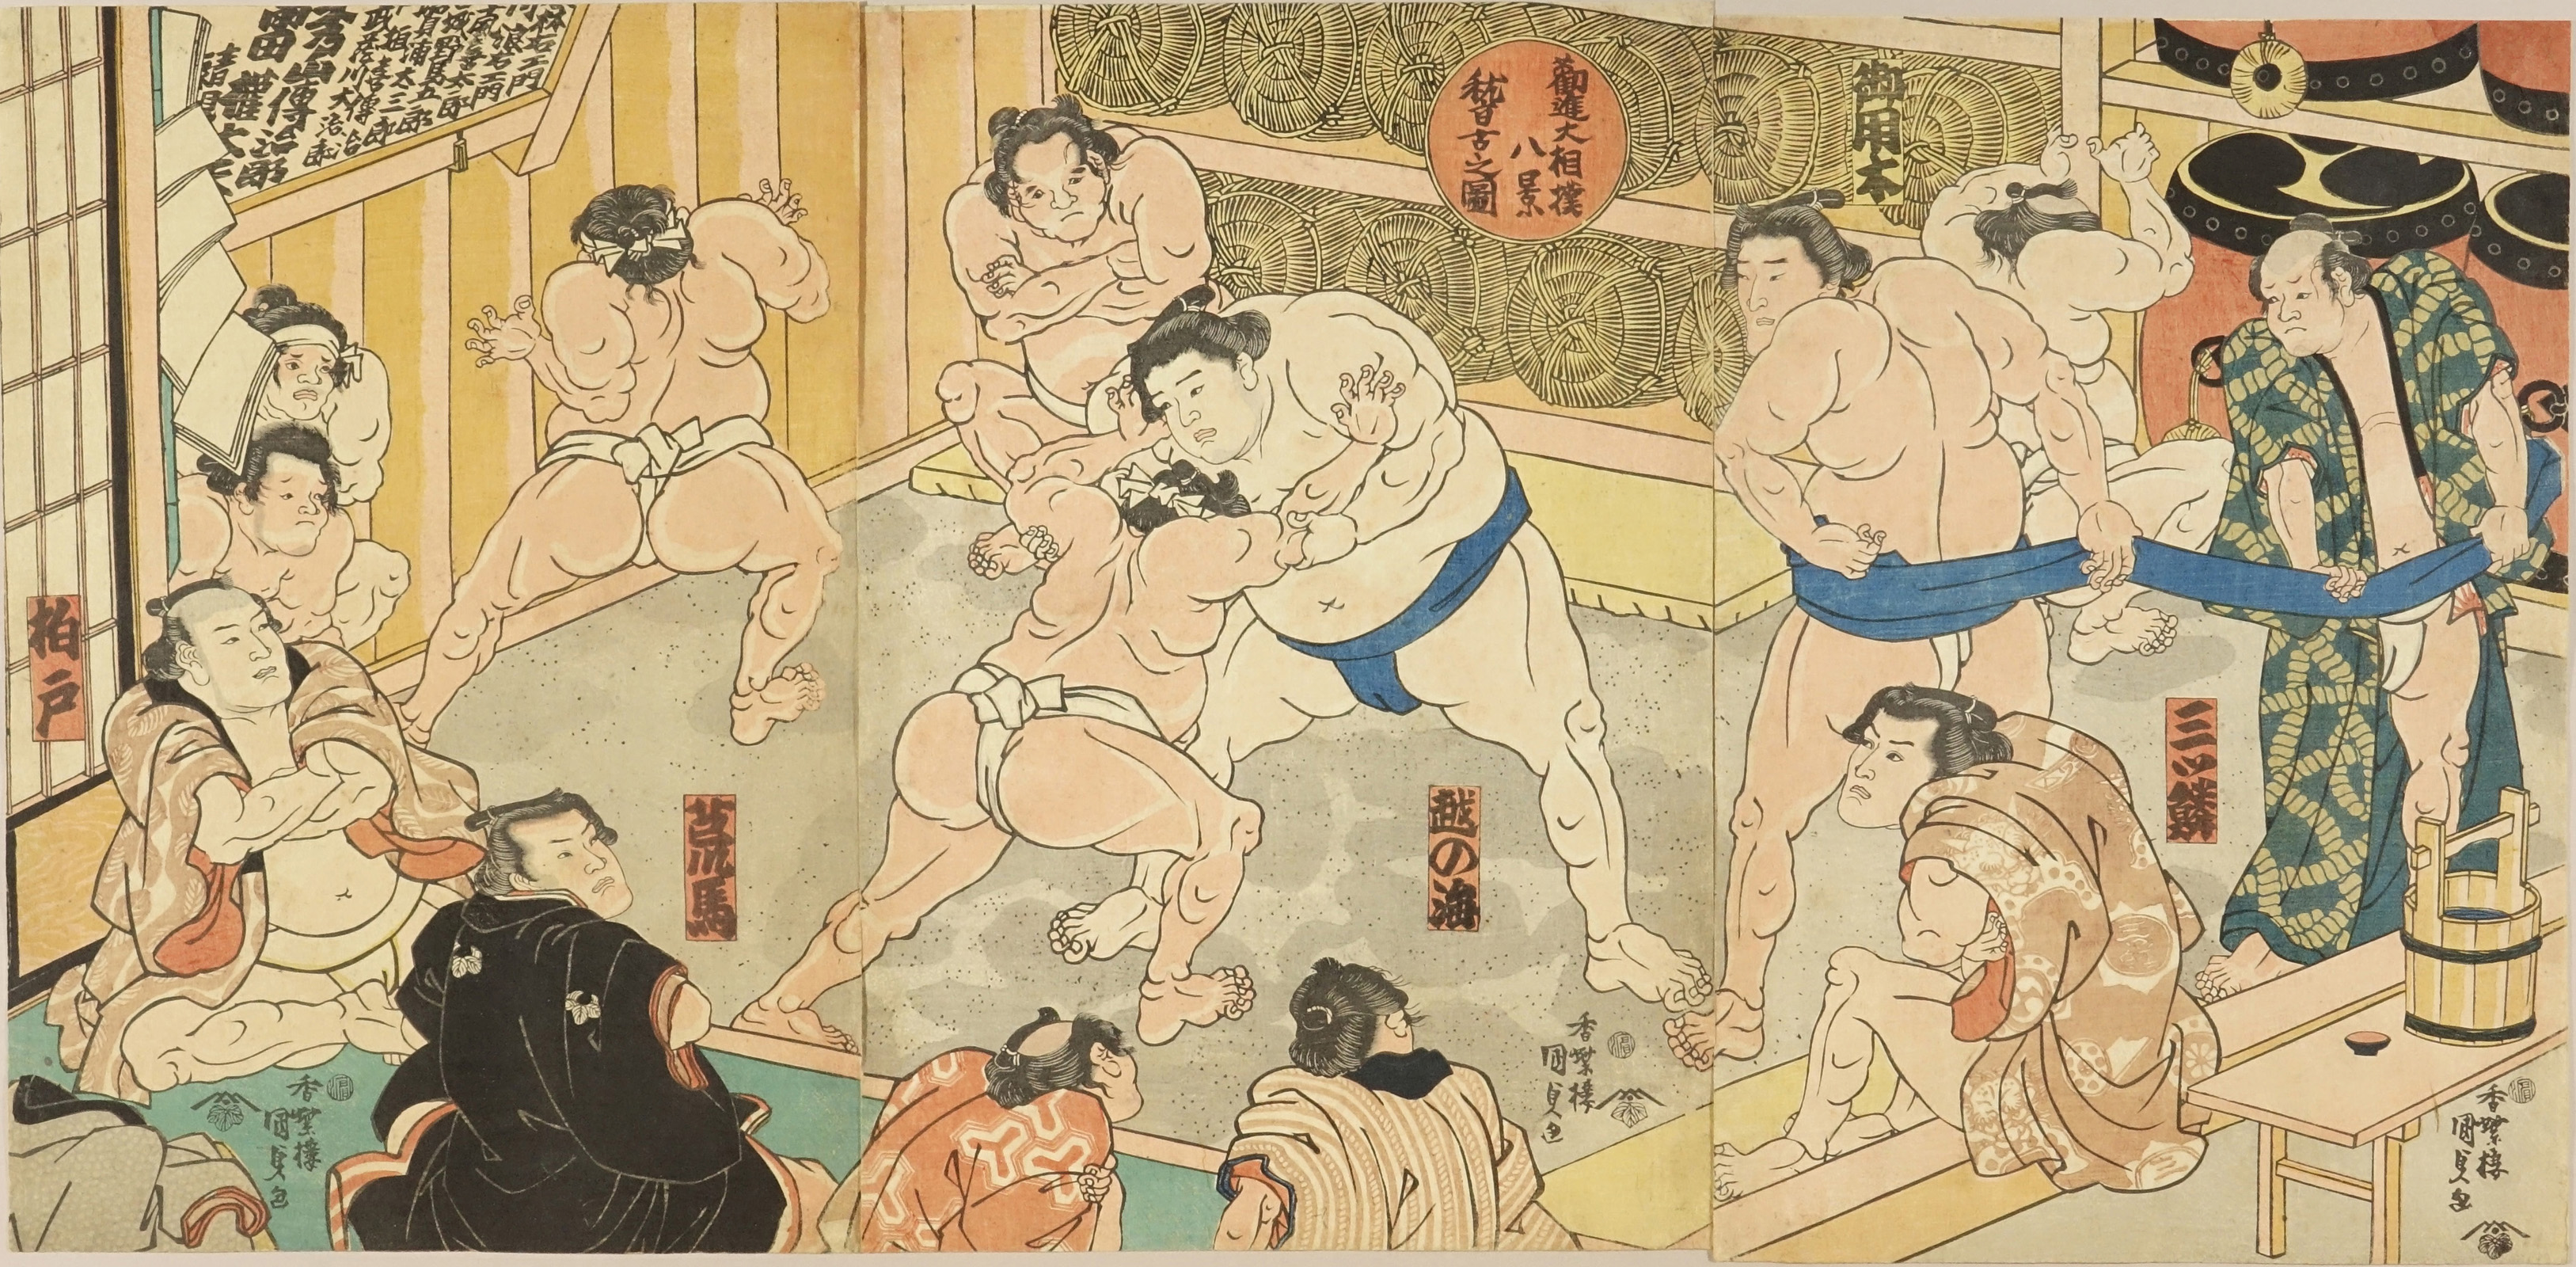 KUNISADA <i>Keiko no zu</i> (View of training), from <i>Kanjin o-zumo hakkei</i> (Eight views of temple solicitation sumo), triptych